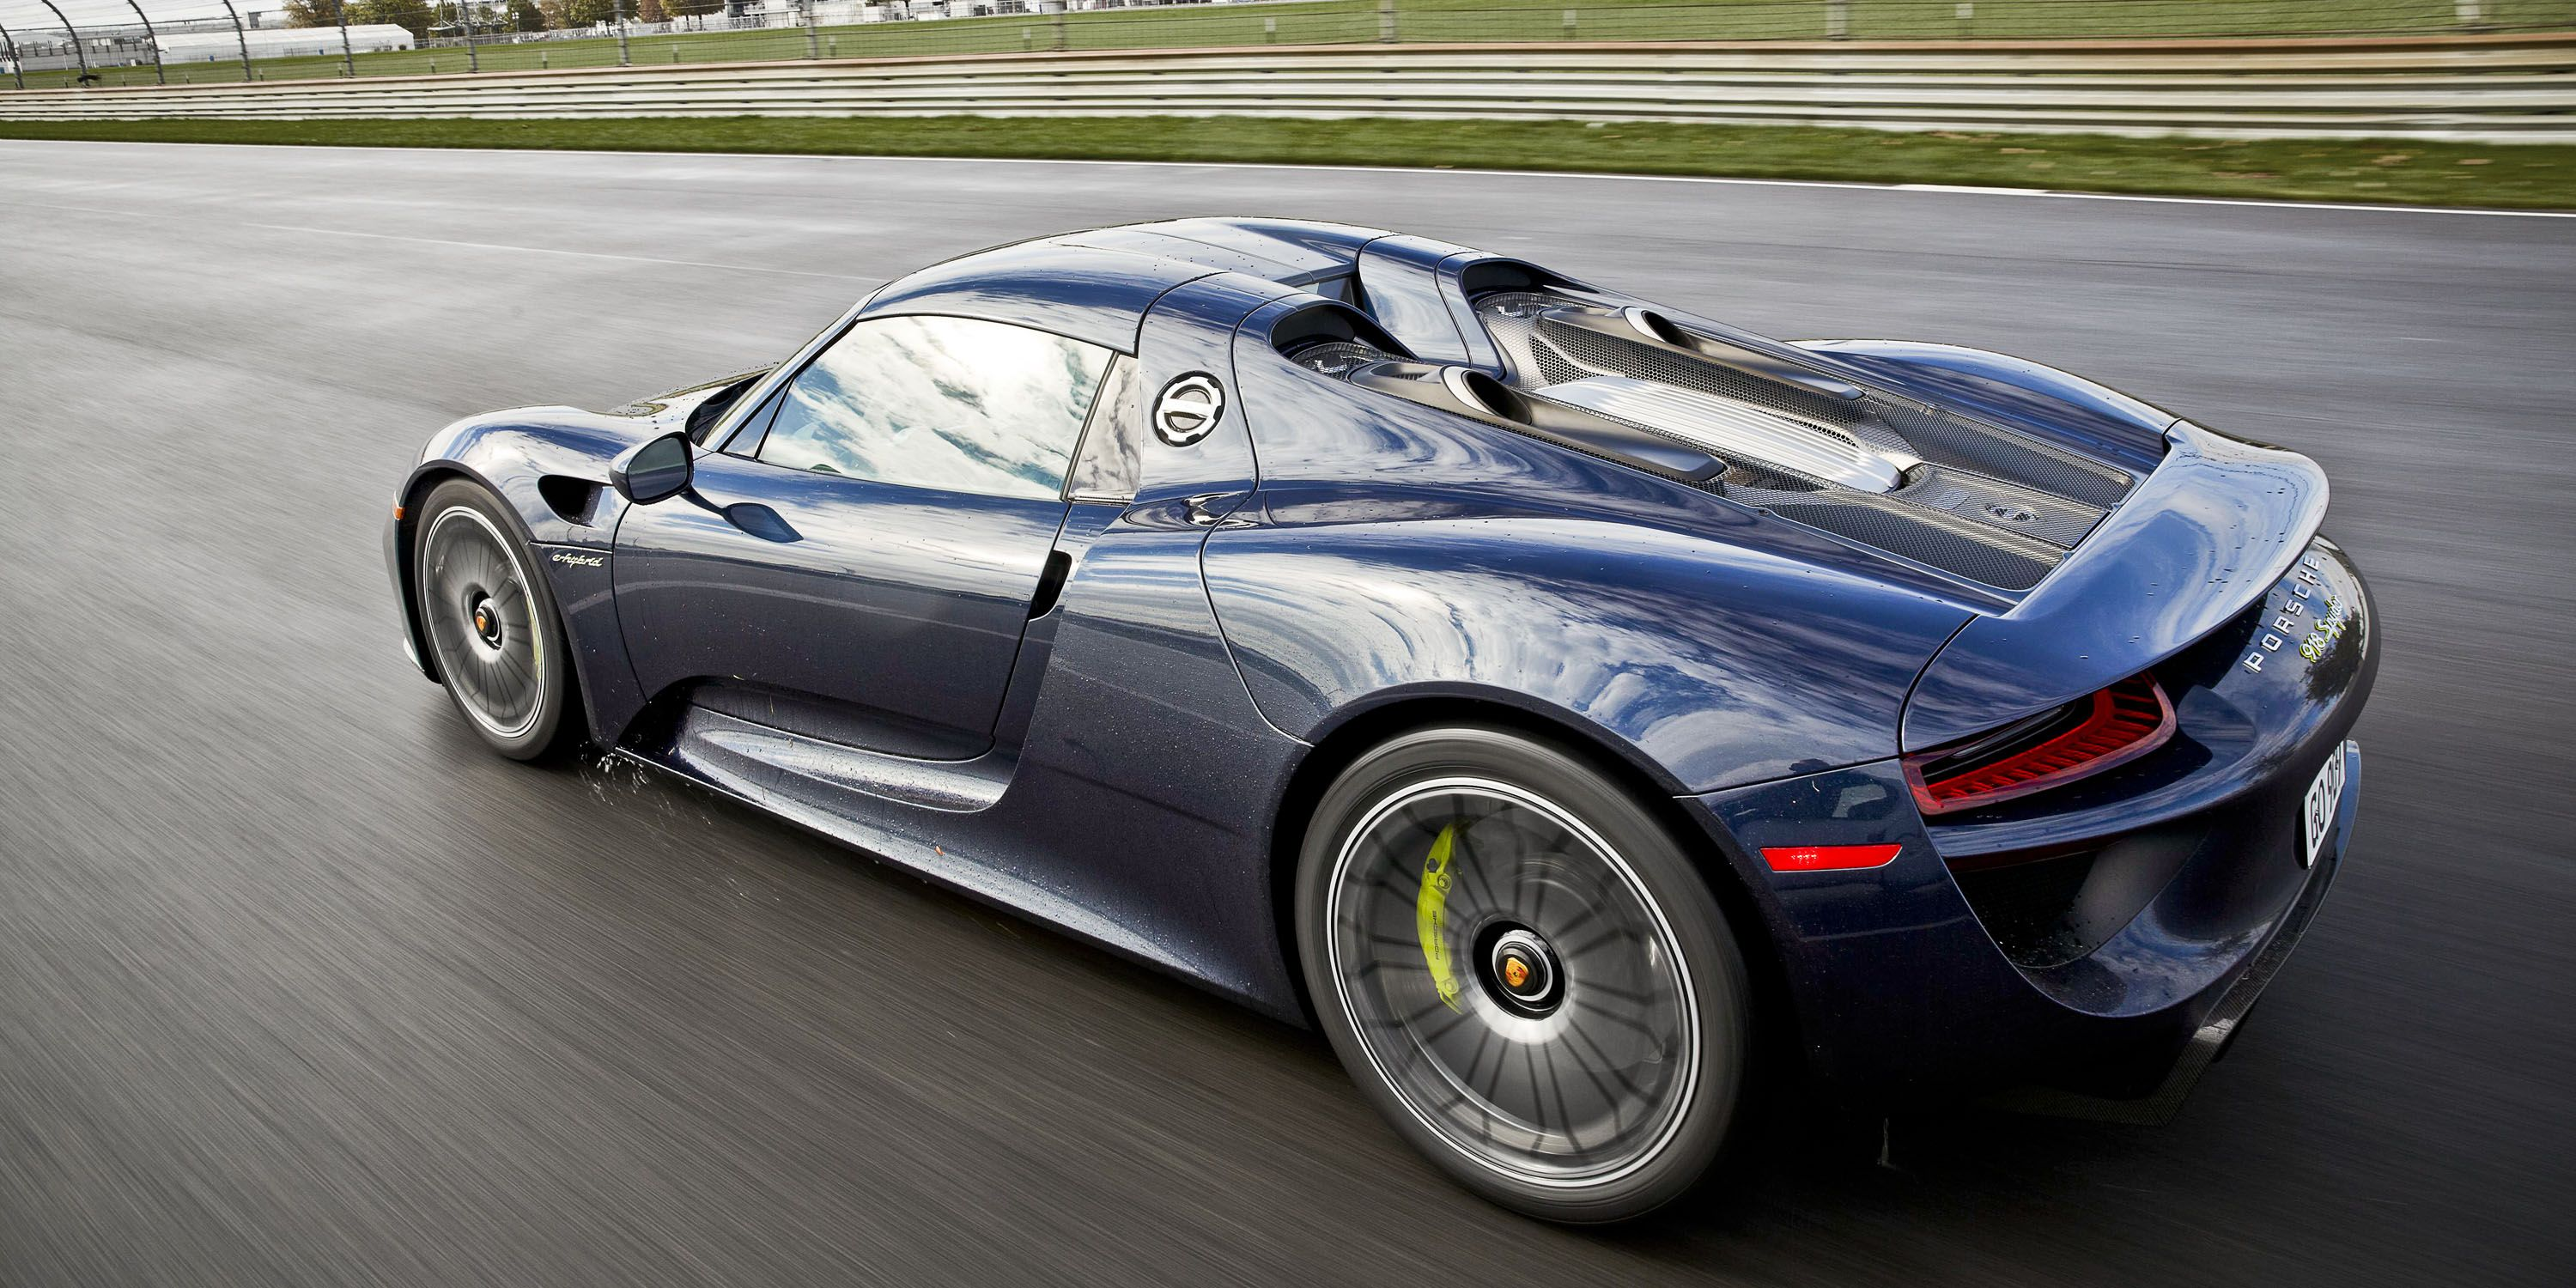 918-vs-962_ww_6566 Remarkable Porsche 918 Spyder On the Road Cars Trend